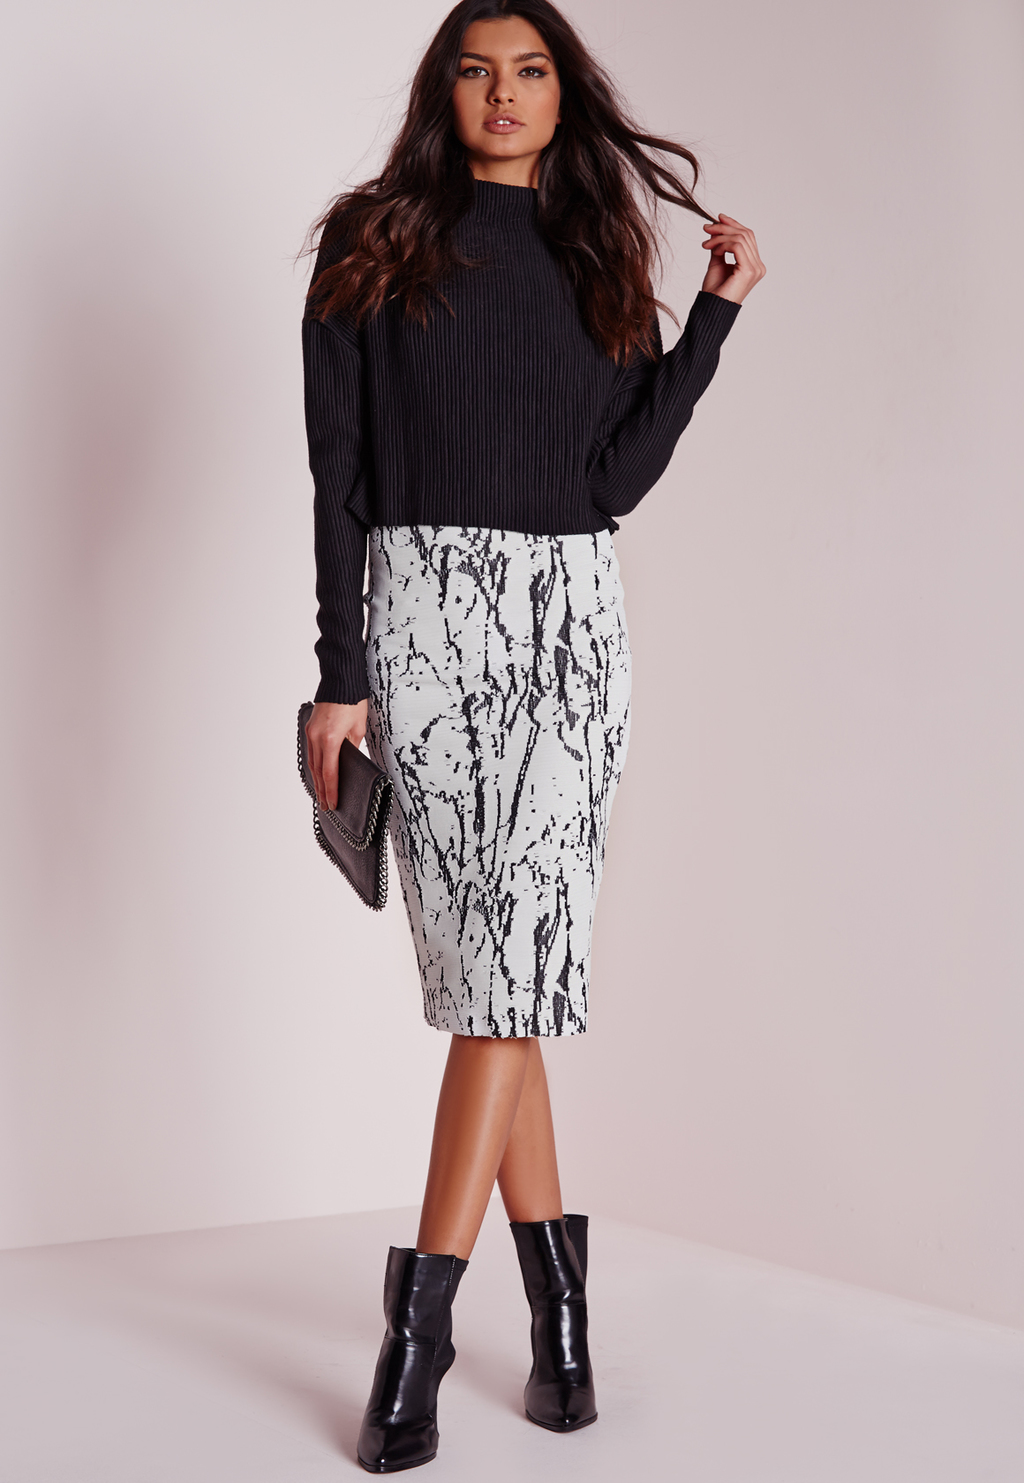 Marble Midi Skirt, White - length: below the knee; style: pencil; fit: tight; waist: mid/regular rise; predominant colour: white; secondary colour: mid grey; occasions: evening; fibres: viscose/rayon - stretch; texture group: jersey - clingy; pattern type: fabric; pattern: patterned/print; multicoloured: multicoloured; season: s/s 2016